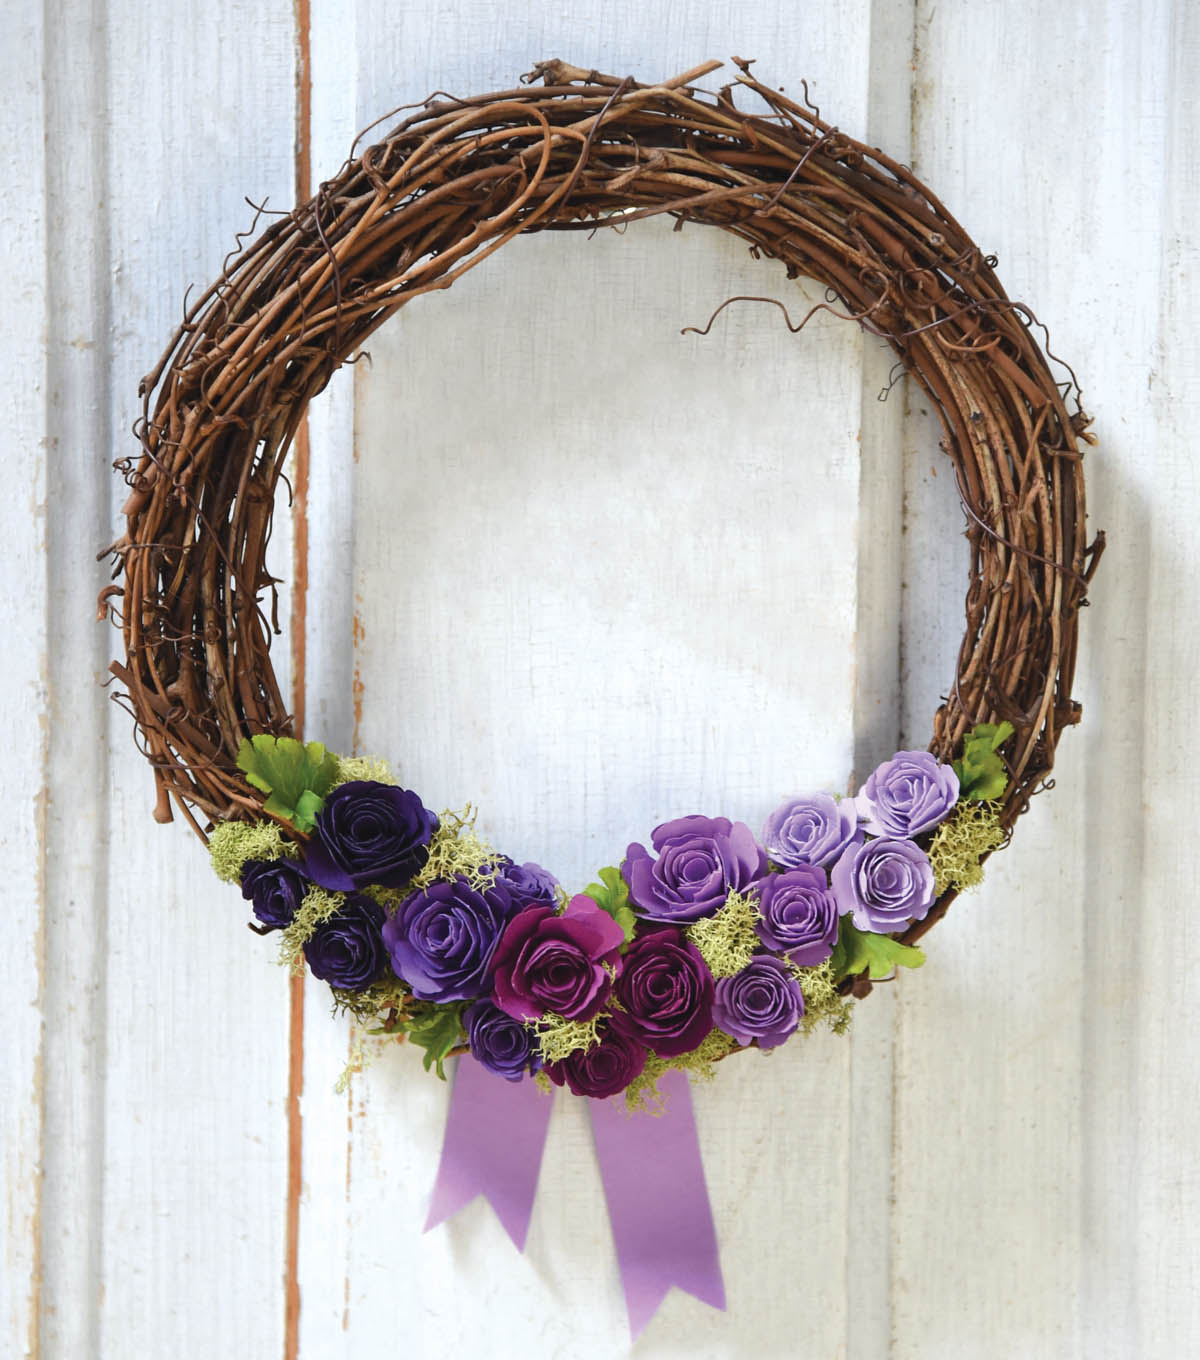 How To Make A Bitty Blossoms Wreath